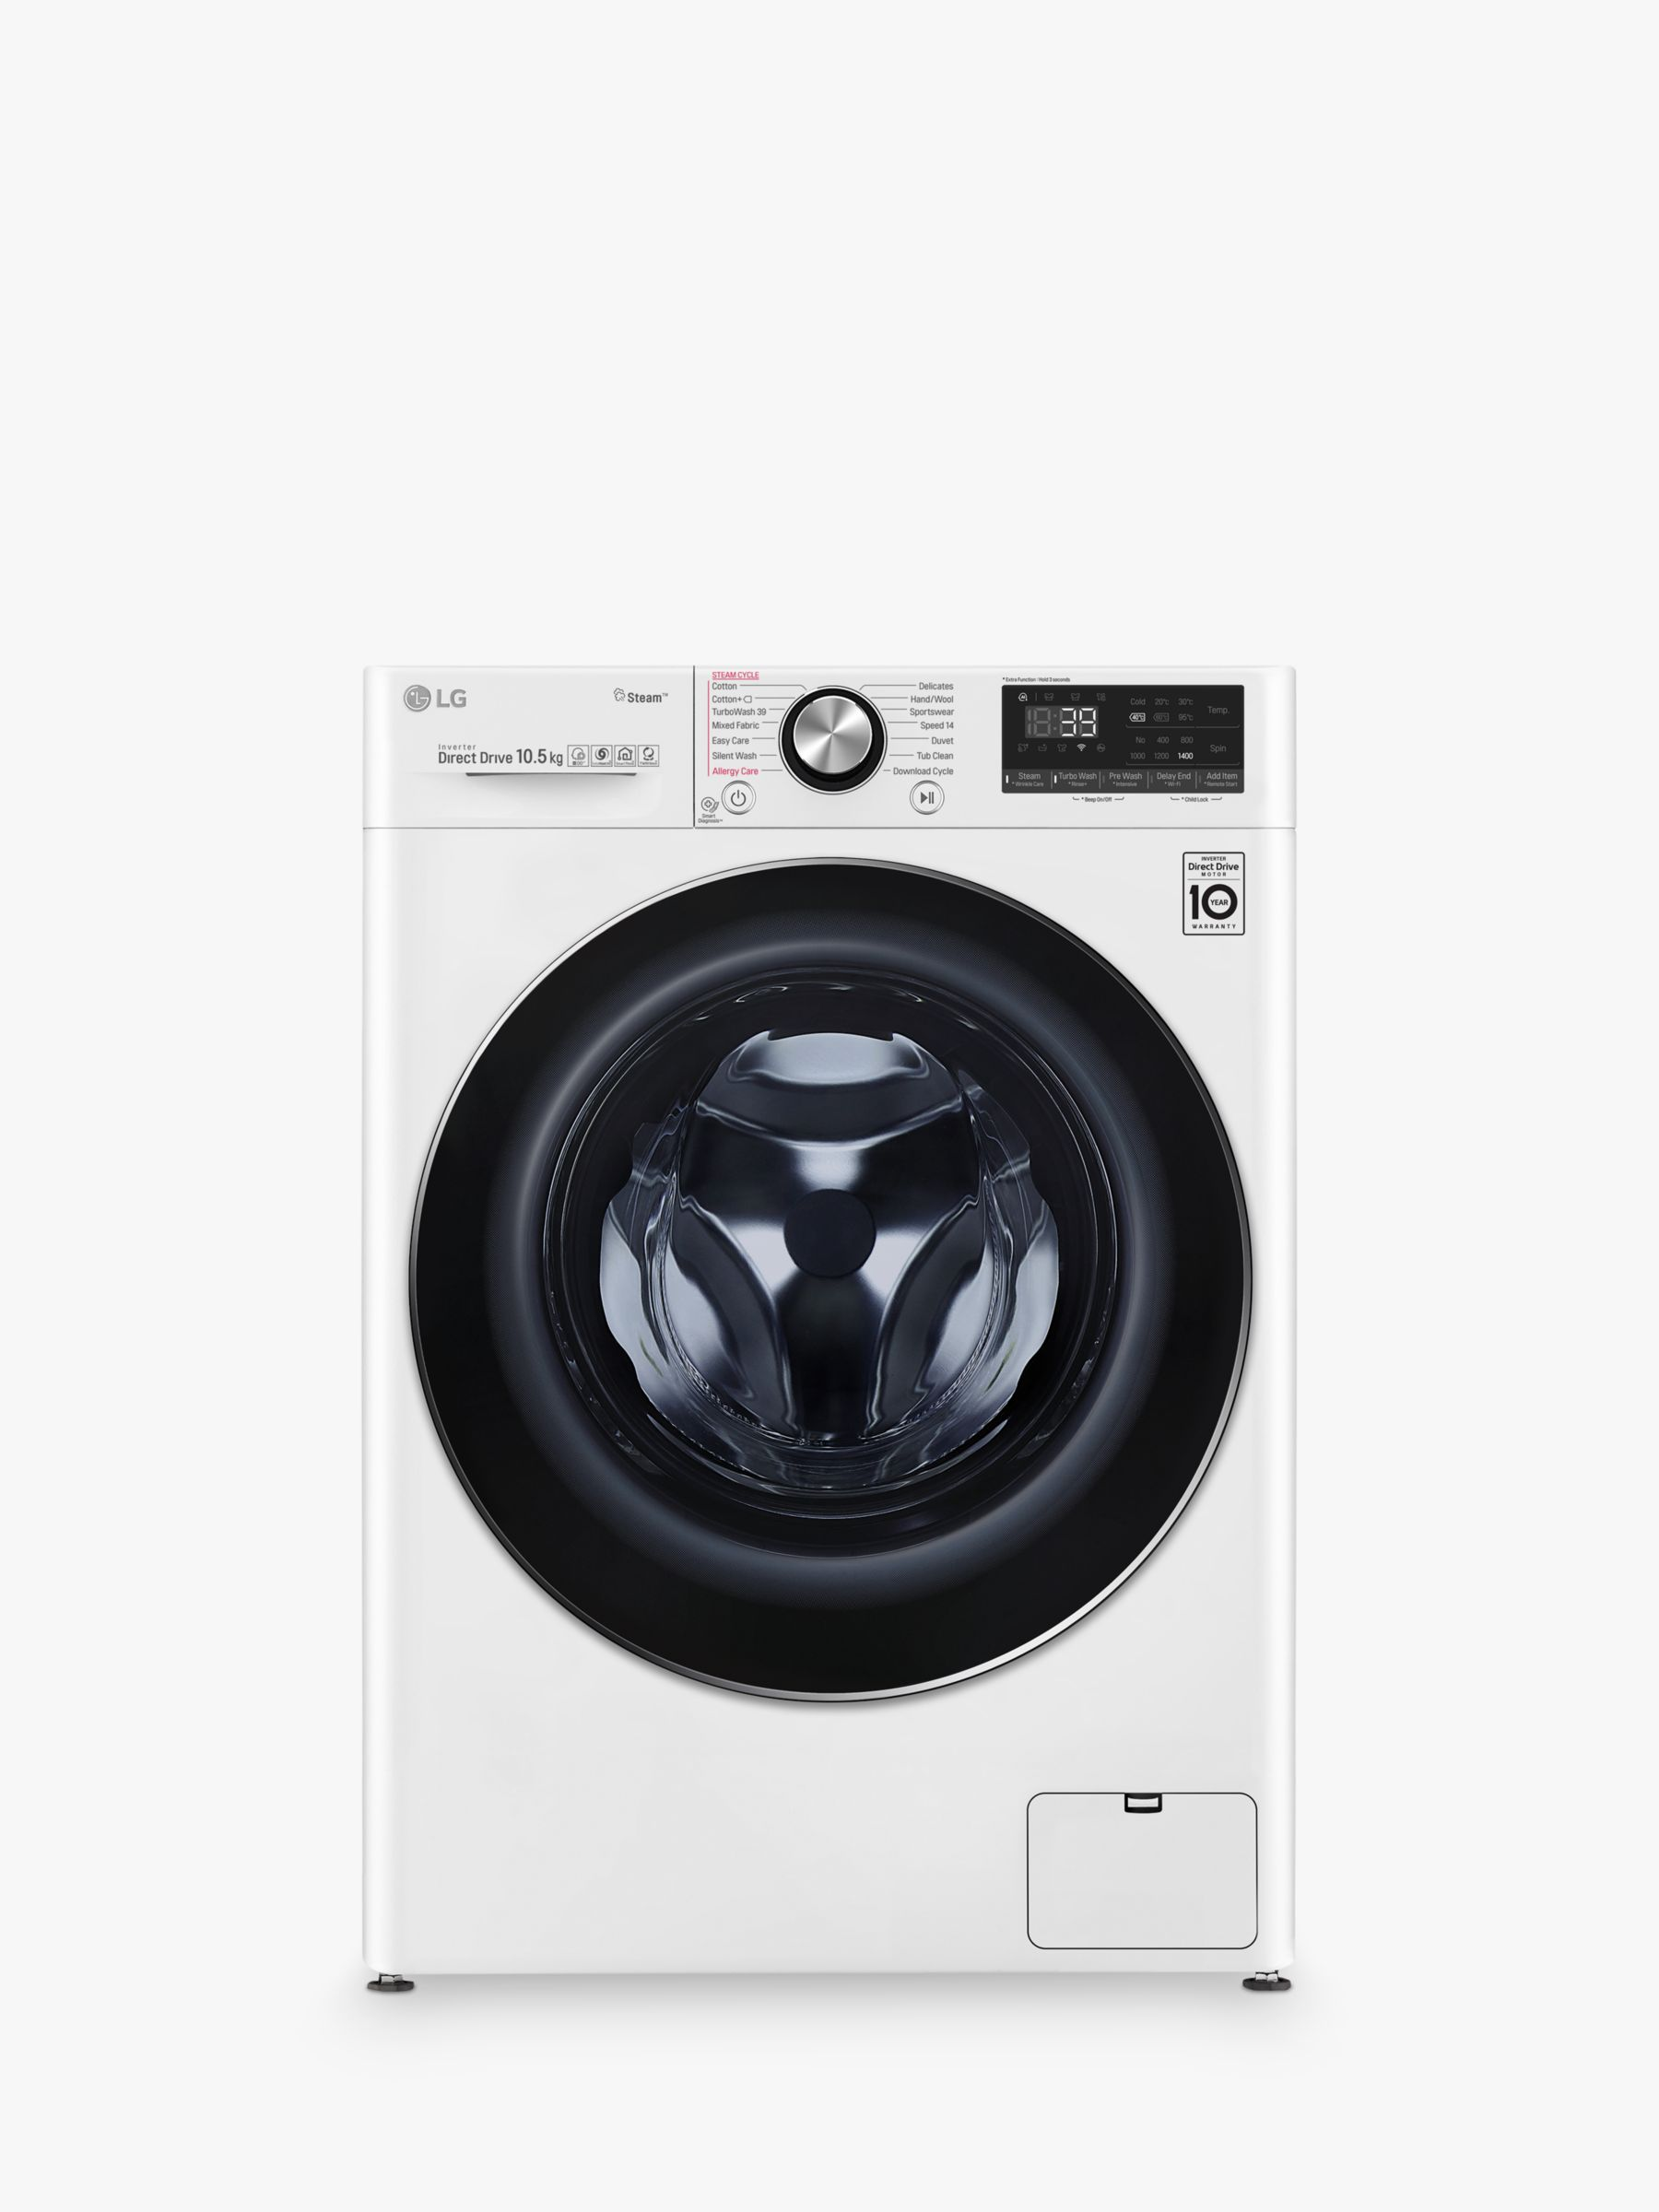 LG LG F4V910WTS Freestanding Washing Machine, 10kg Load, A+++ Energy Rating, 1400rpm Spin, White